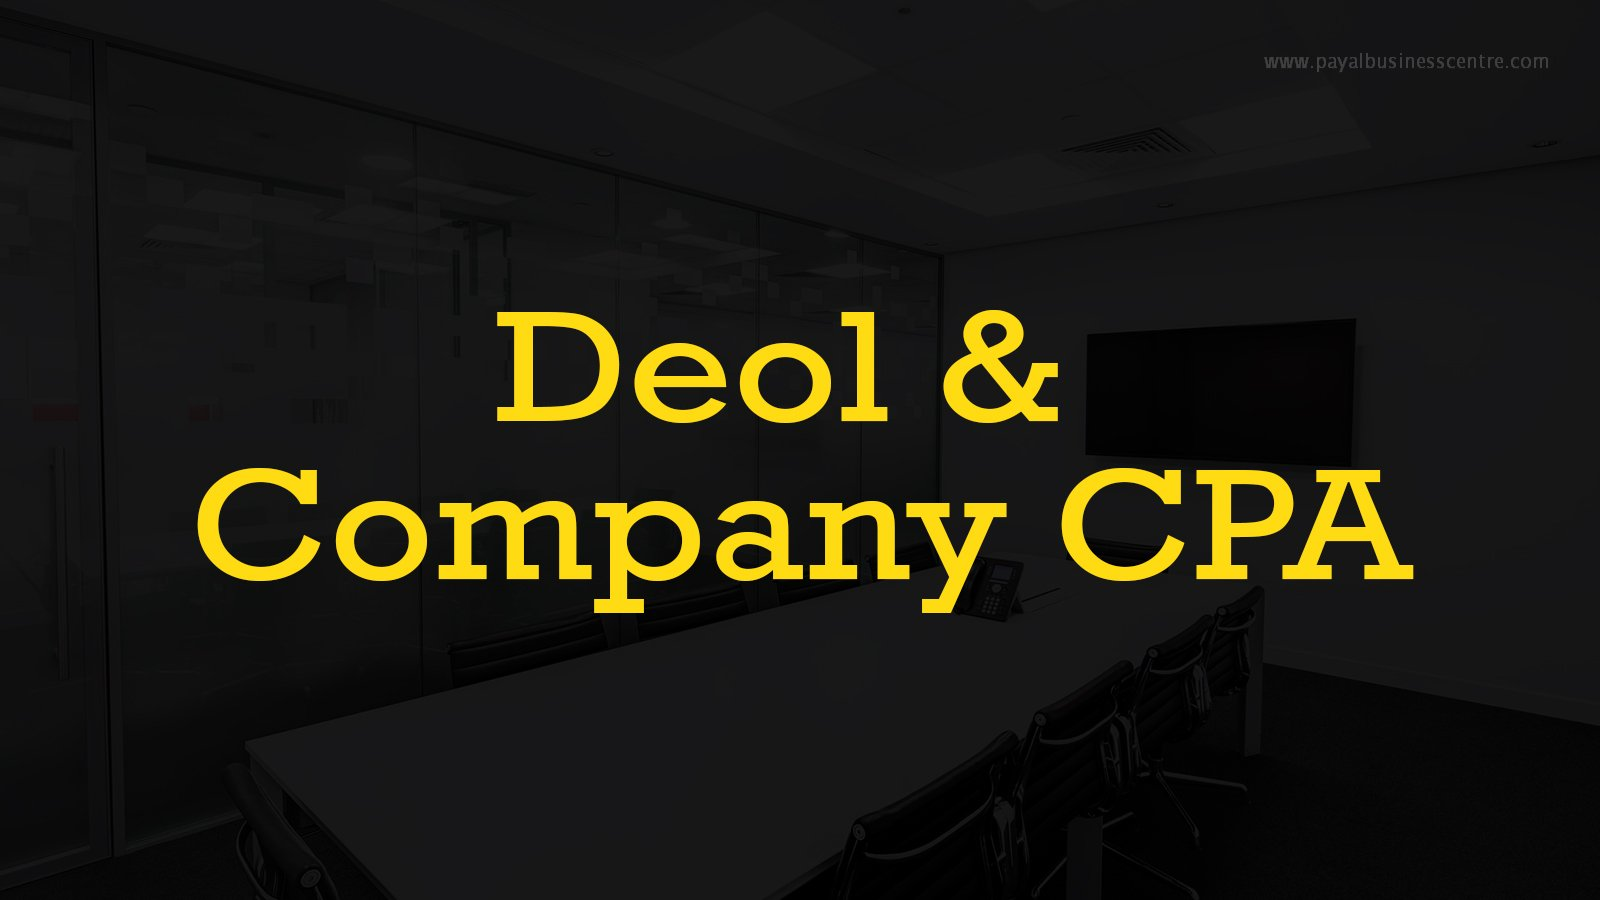 Deol & Company CPA